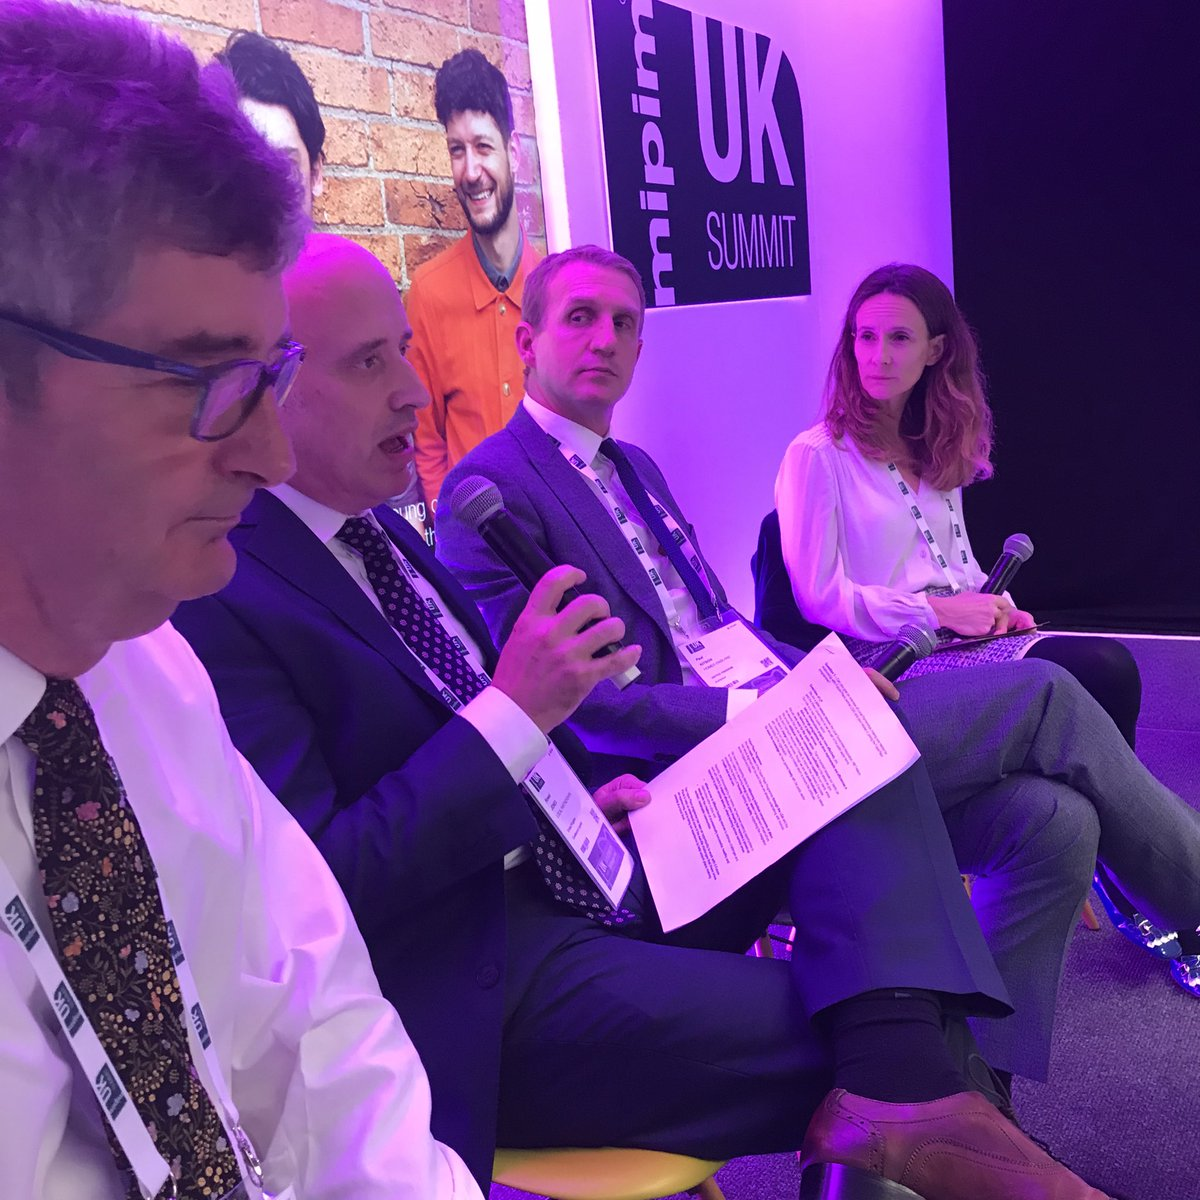 RT @ben_derbyshire I join a panel @MIPIMWorld #MIPIMUK with @ianet55 Tant, @BrightlyLightly LucyCarmichael, Howel Jones of @LP_localgov and @HomesPaulK of @HomesEngland to discuss @RTPIPlanners @RIBA @LGANews @CIHhousing #FuturePlace. #collaboration #placemaking #urbanism.